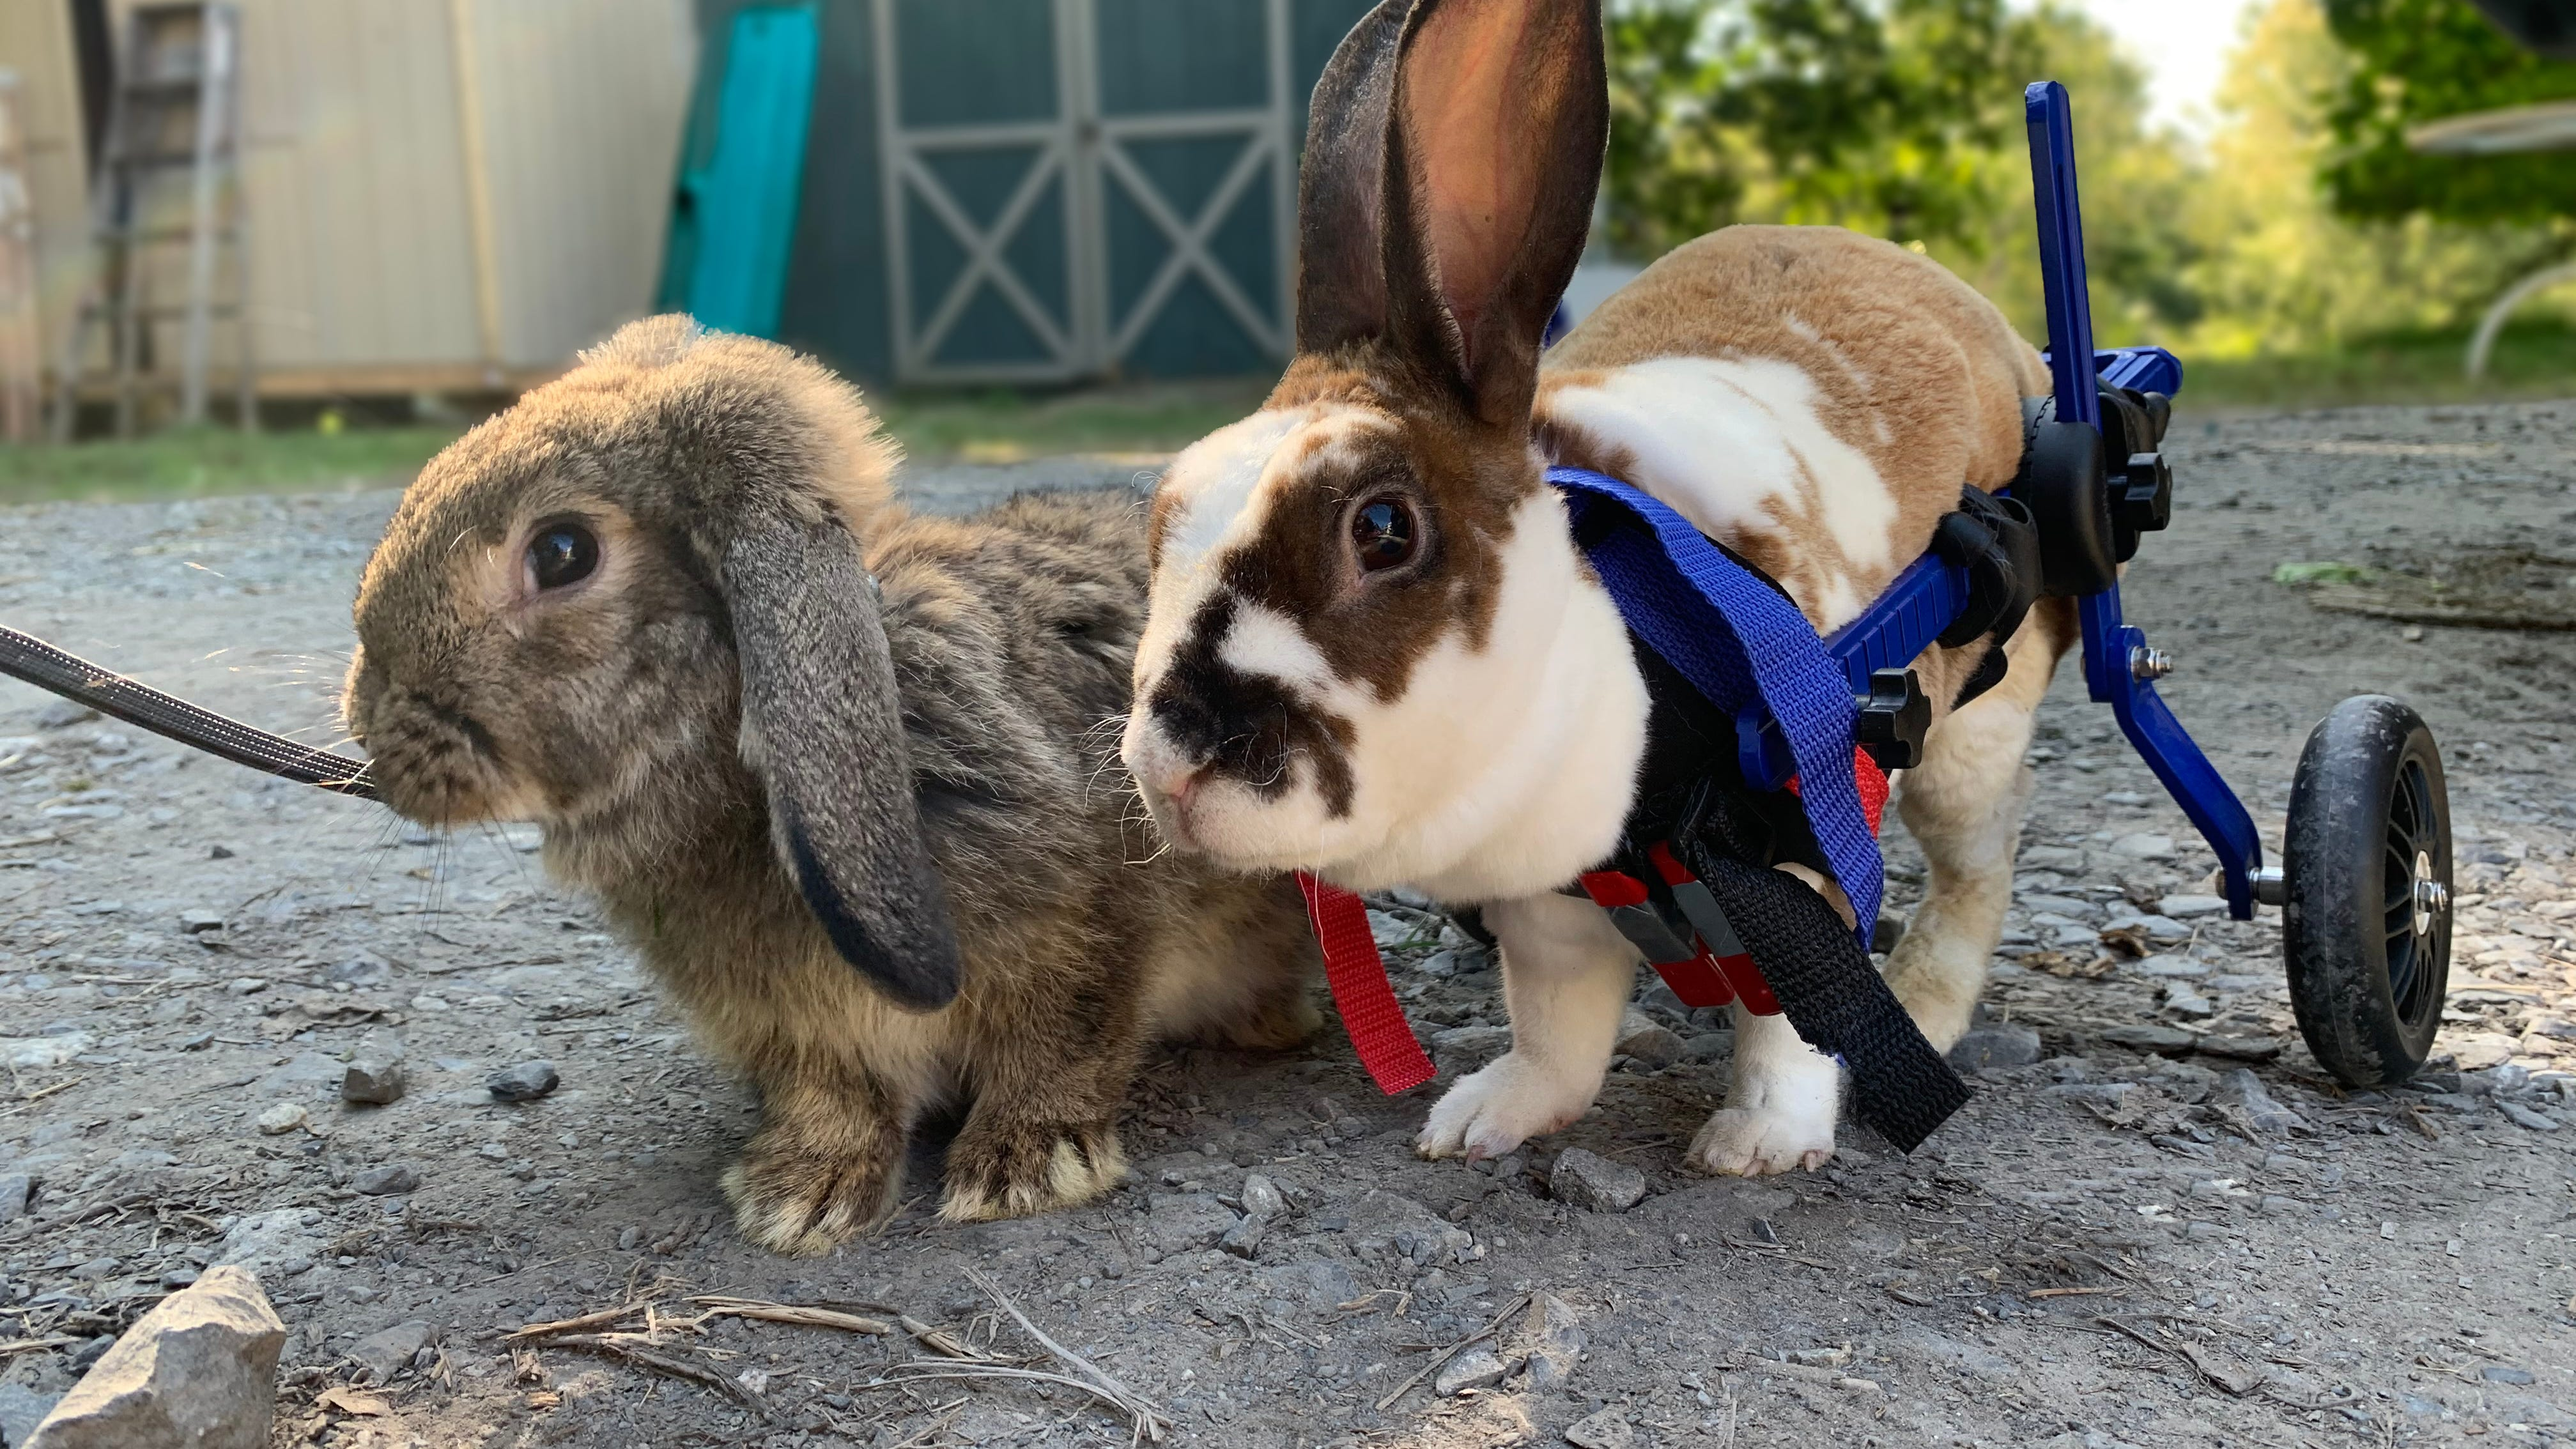 Finch and Rex came to Reenies Rabbit Rescue at different times, from different places, both suffering from paralysis of their back legs. Finch uses an H-Harness when out for a walk, while Rex occasionally uses his wheelchair to gain strength in his legs. They became bonded during their recoveries but are not yet available for adoption.